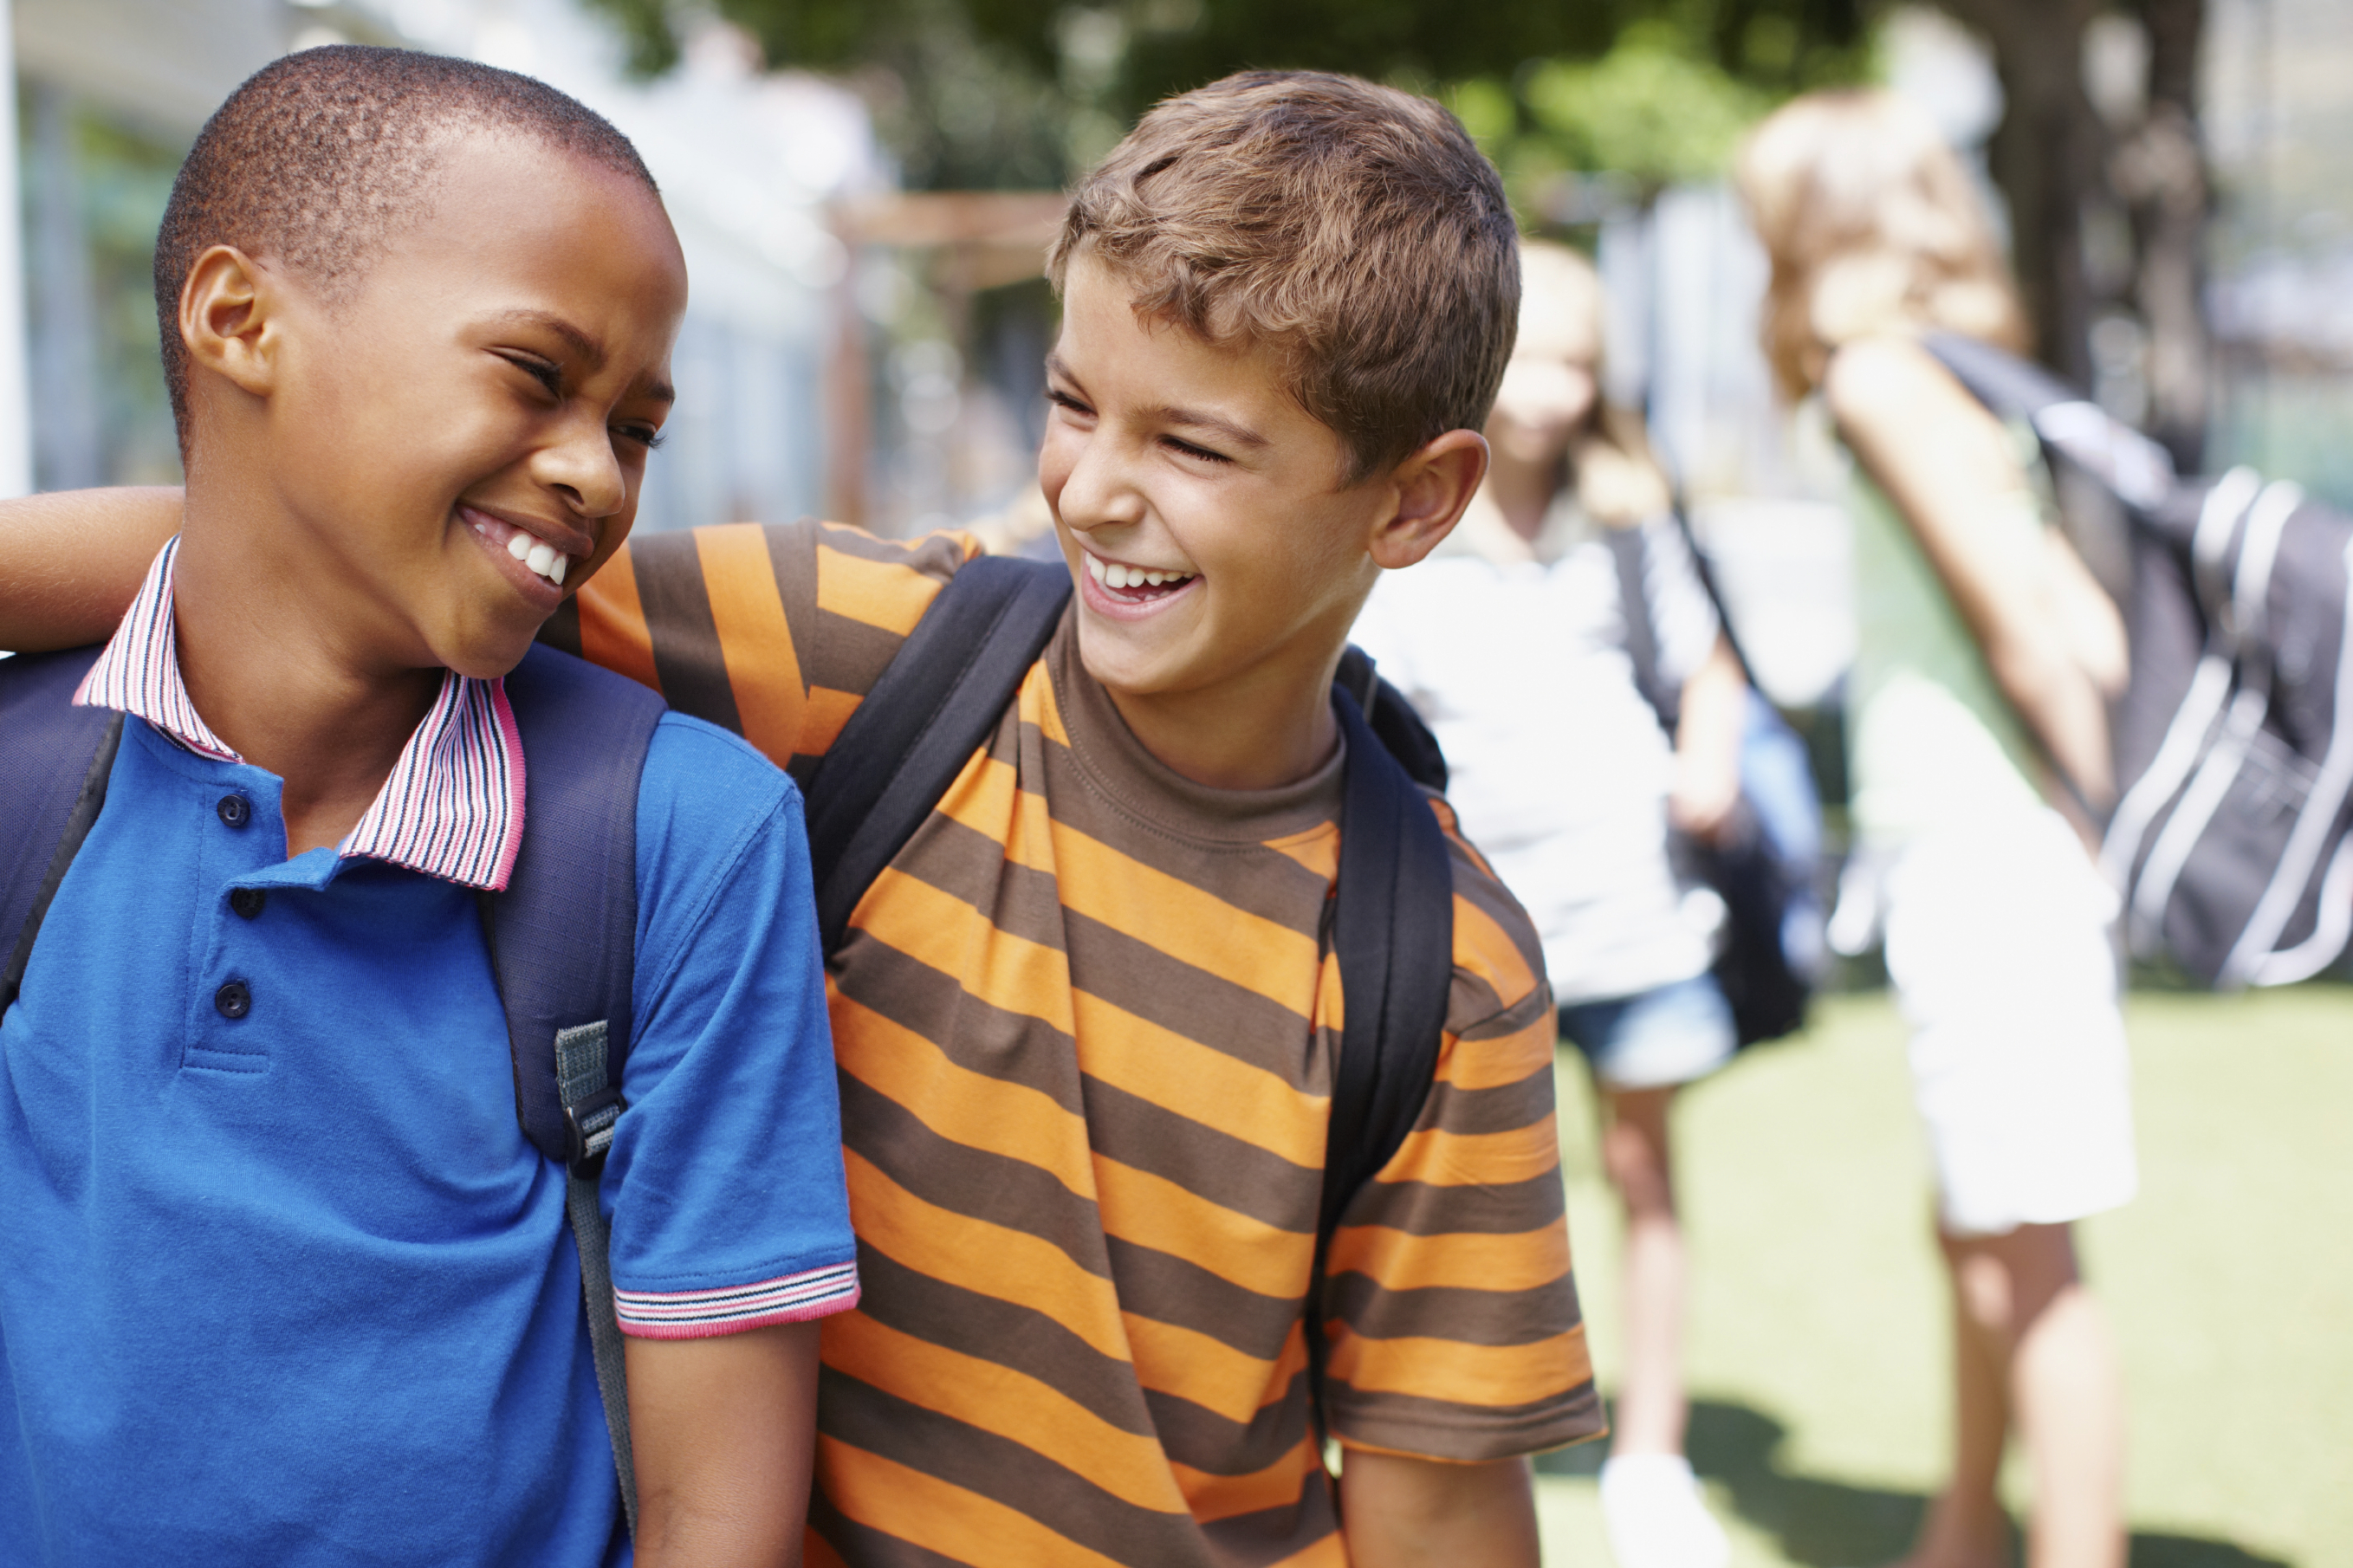 adolescence peers Stages of adolescent development  adolescence is a time of great change for young people when physical changes are  peers, religion, schools, the media.